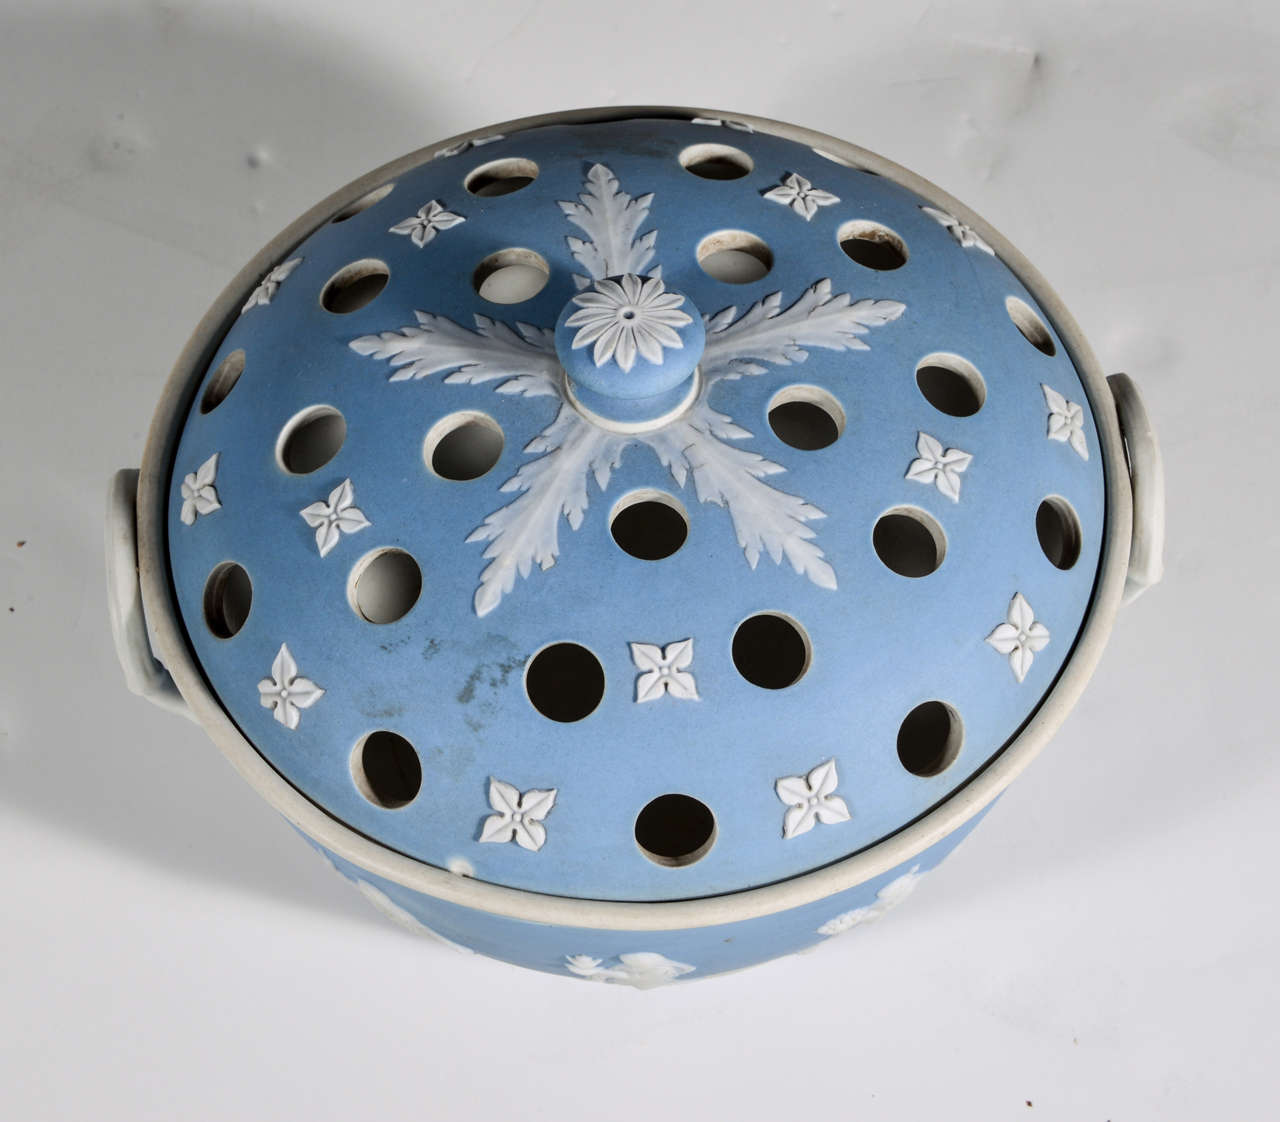 English Wedgwood Blue-dip Jasperware Stoneware Covered Potpourri Bowl In Excellent Condition For Sale In Dallas, TX